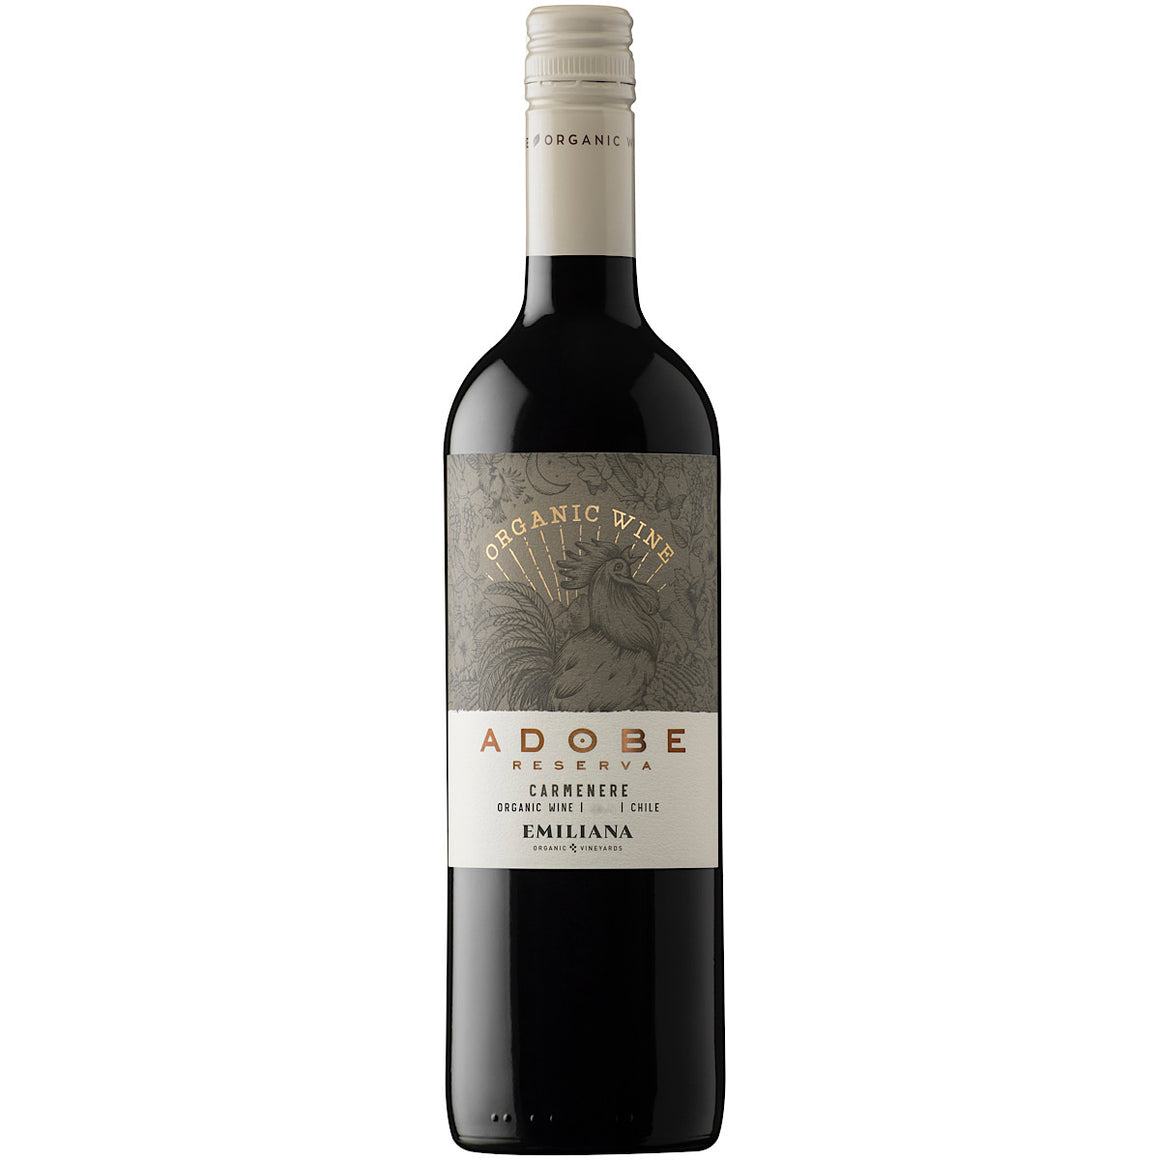 Adobe Reserva Carmenère 12 Bottle Case 75cl